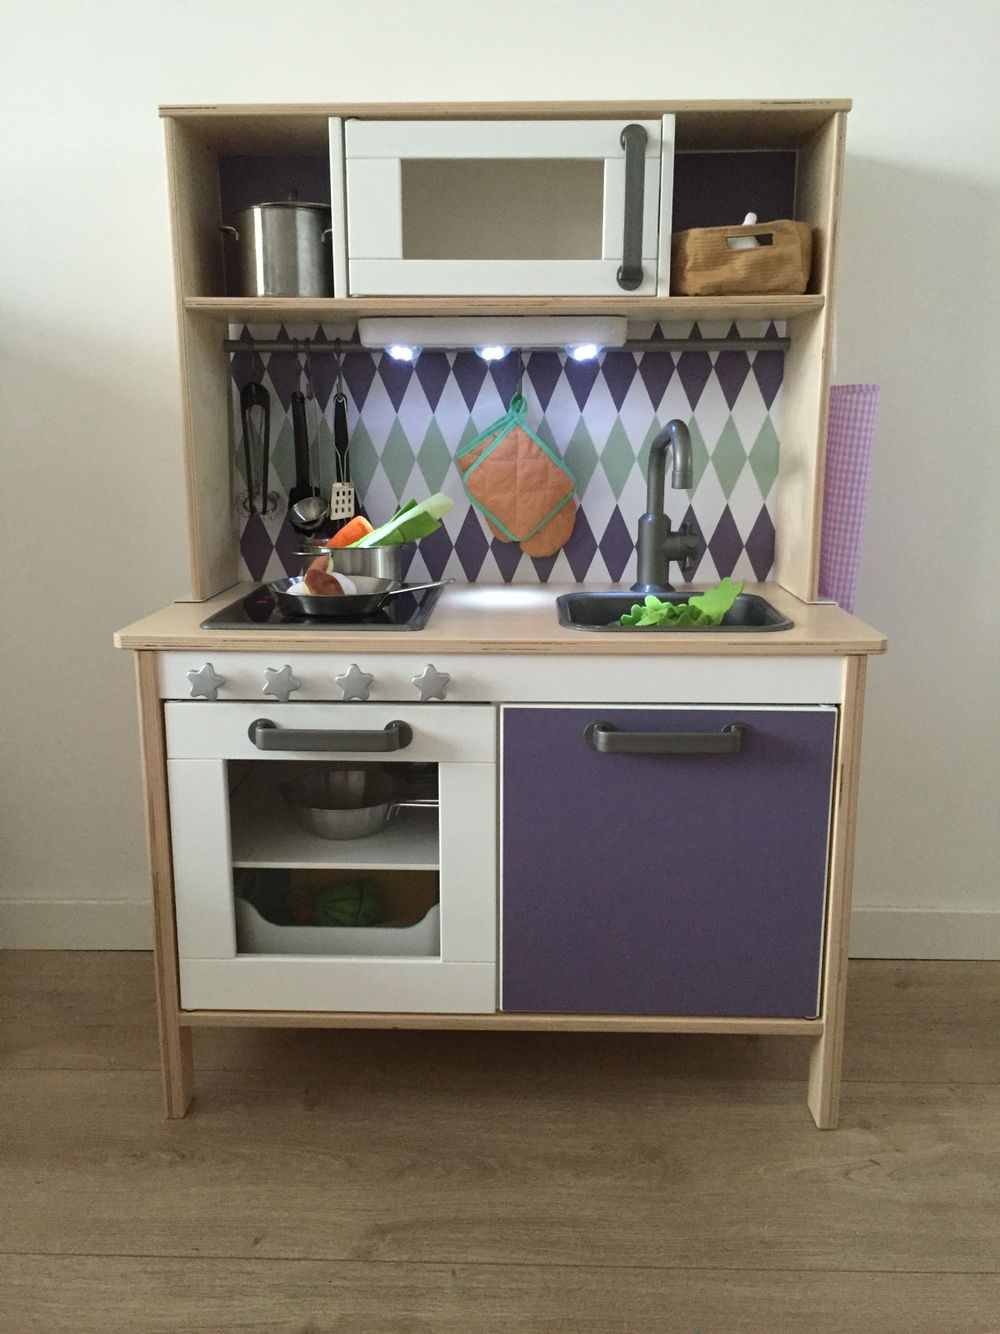 Ikea Kinder Küche Gebraucht Ikea Duktig Kitchen Pimped With Limmaland Stickers Added Some Knobs